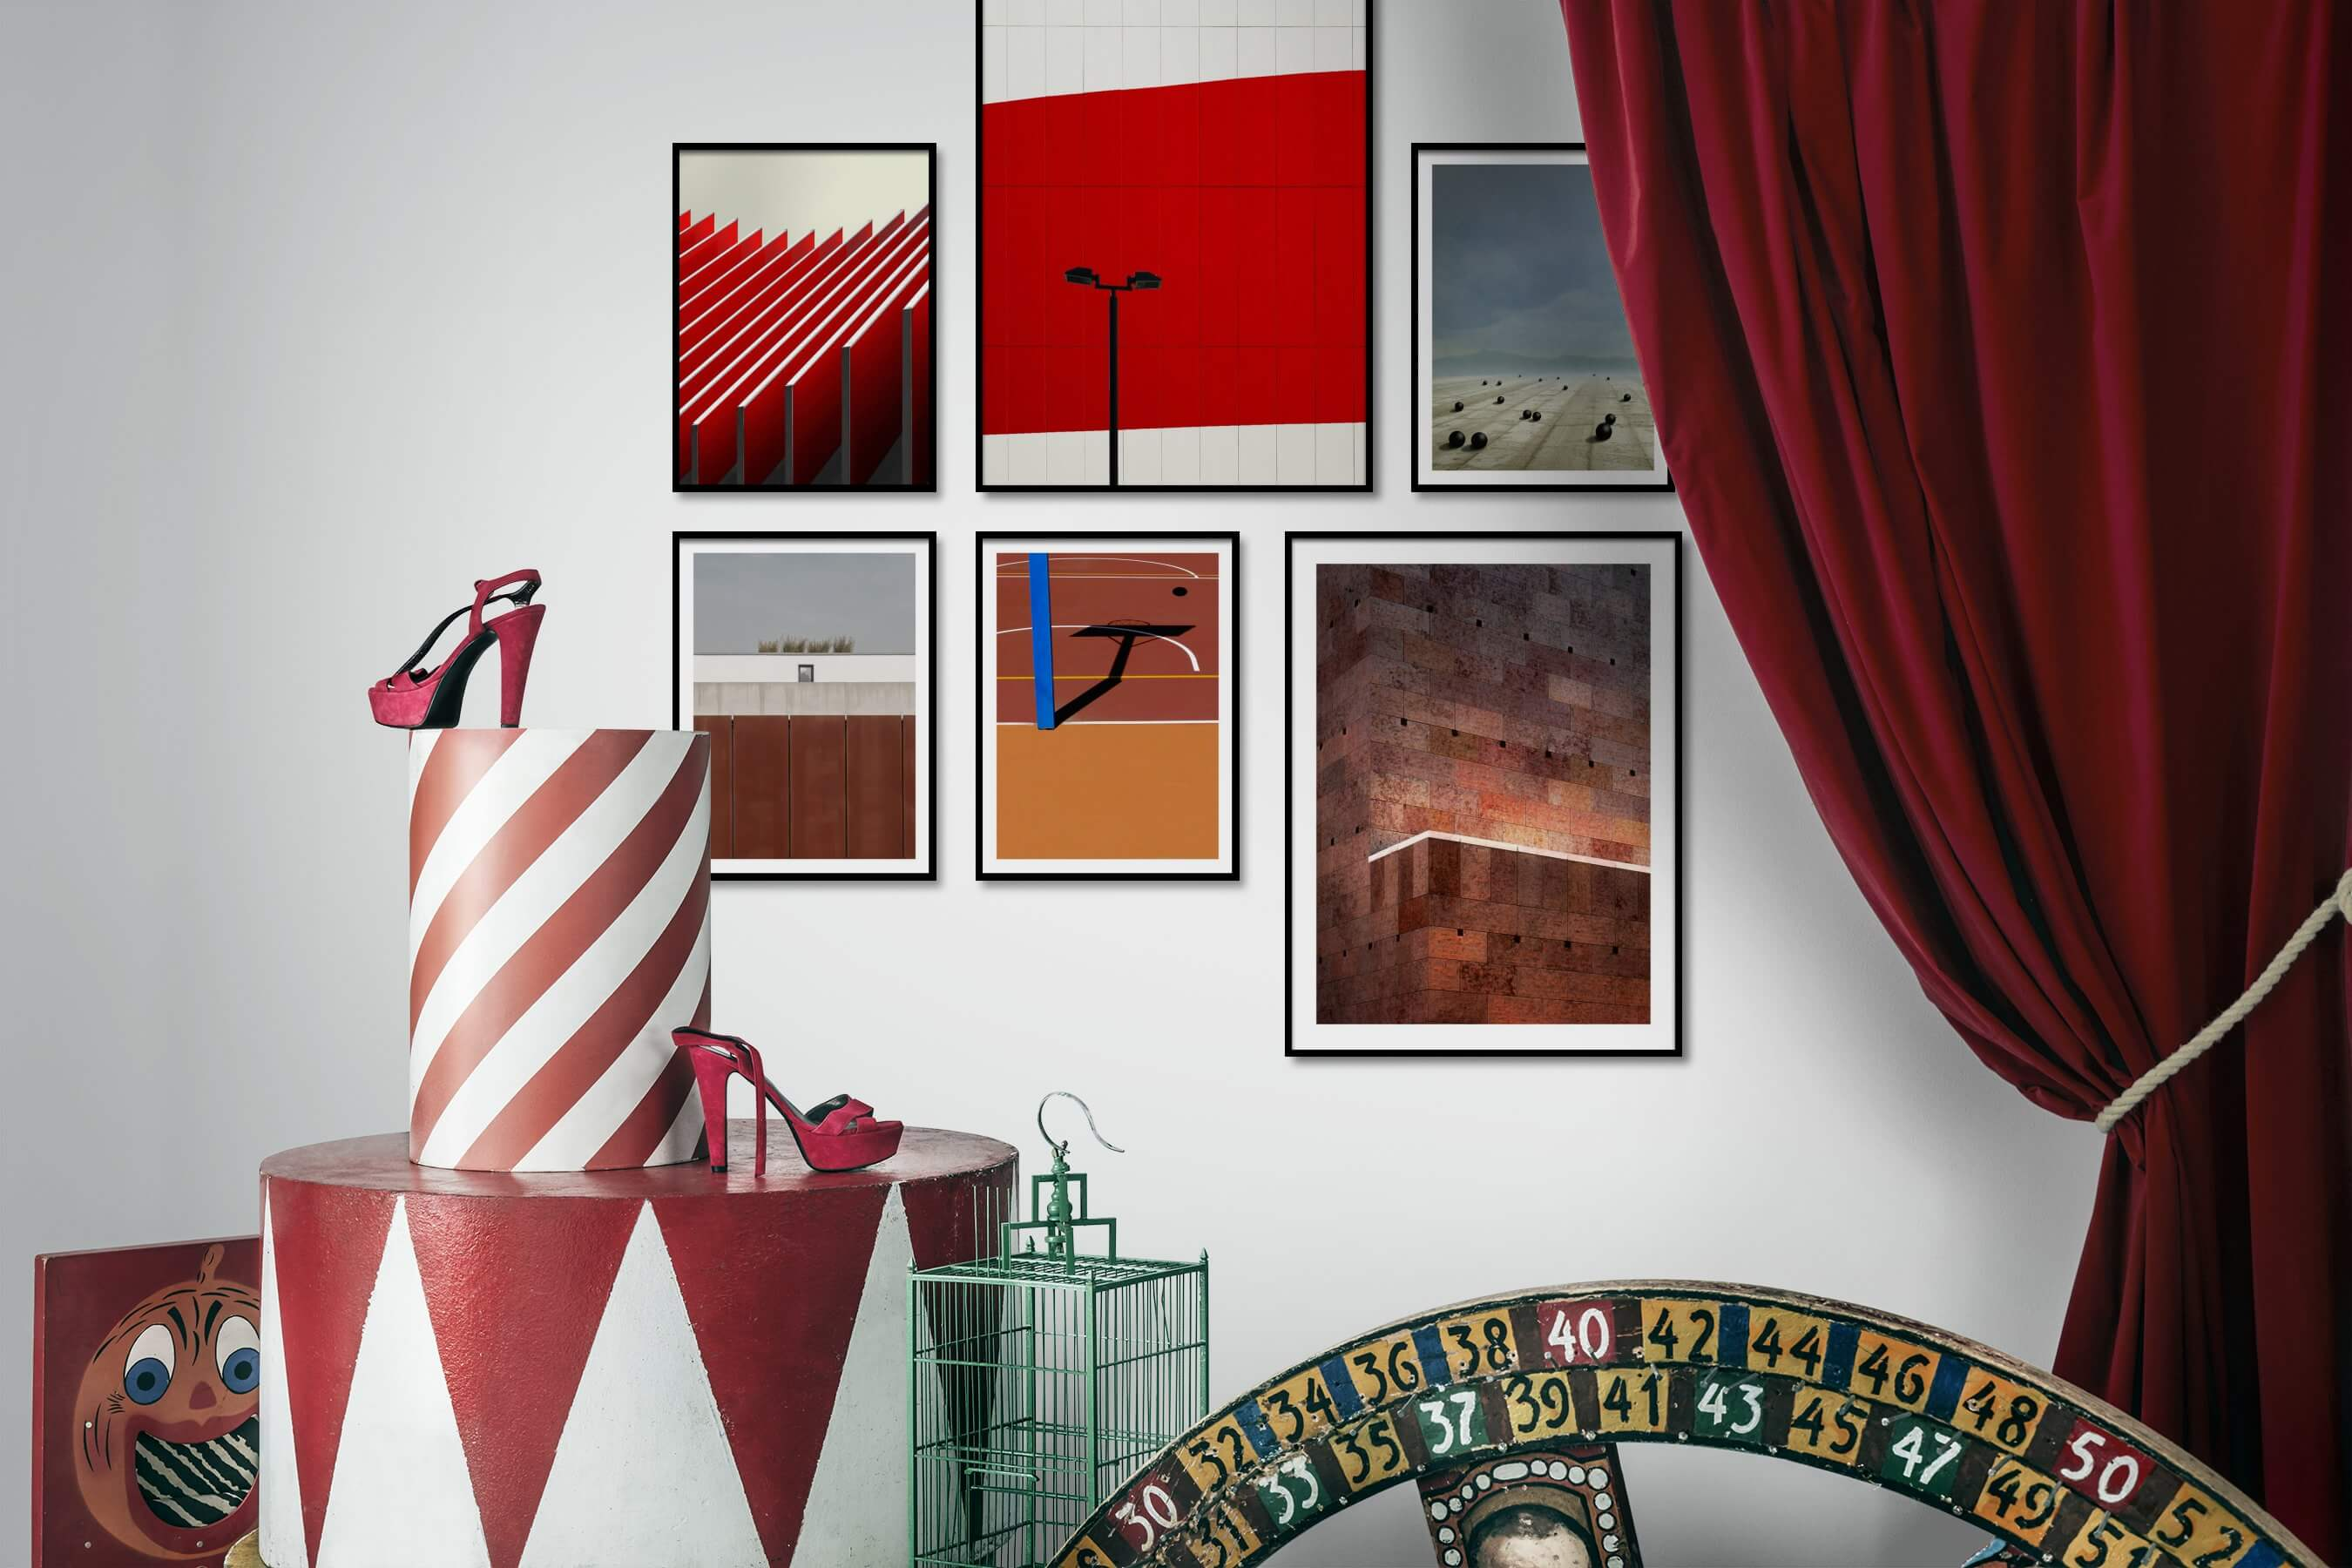 Gallery wall idea with six framed pictures arranged on a wall depicting For the Moderate, For the Minimalist, City Life, Vintage, and Artsy